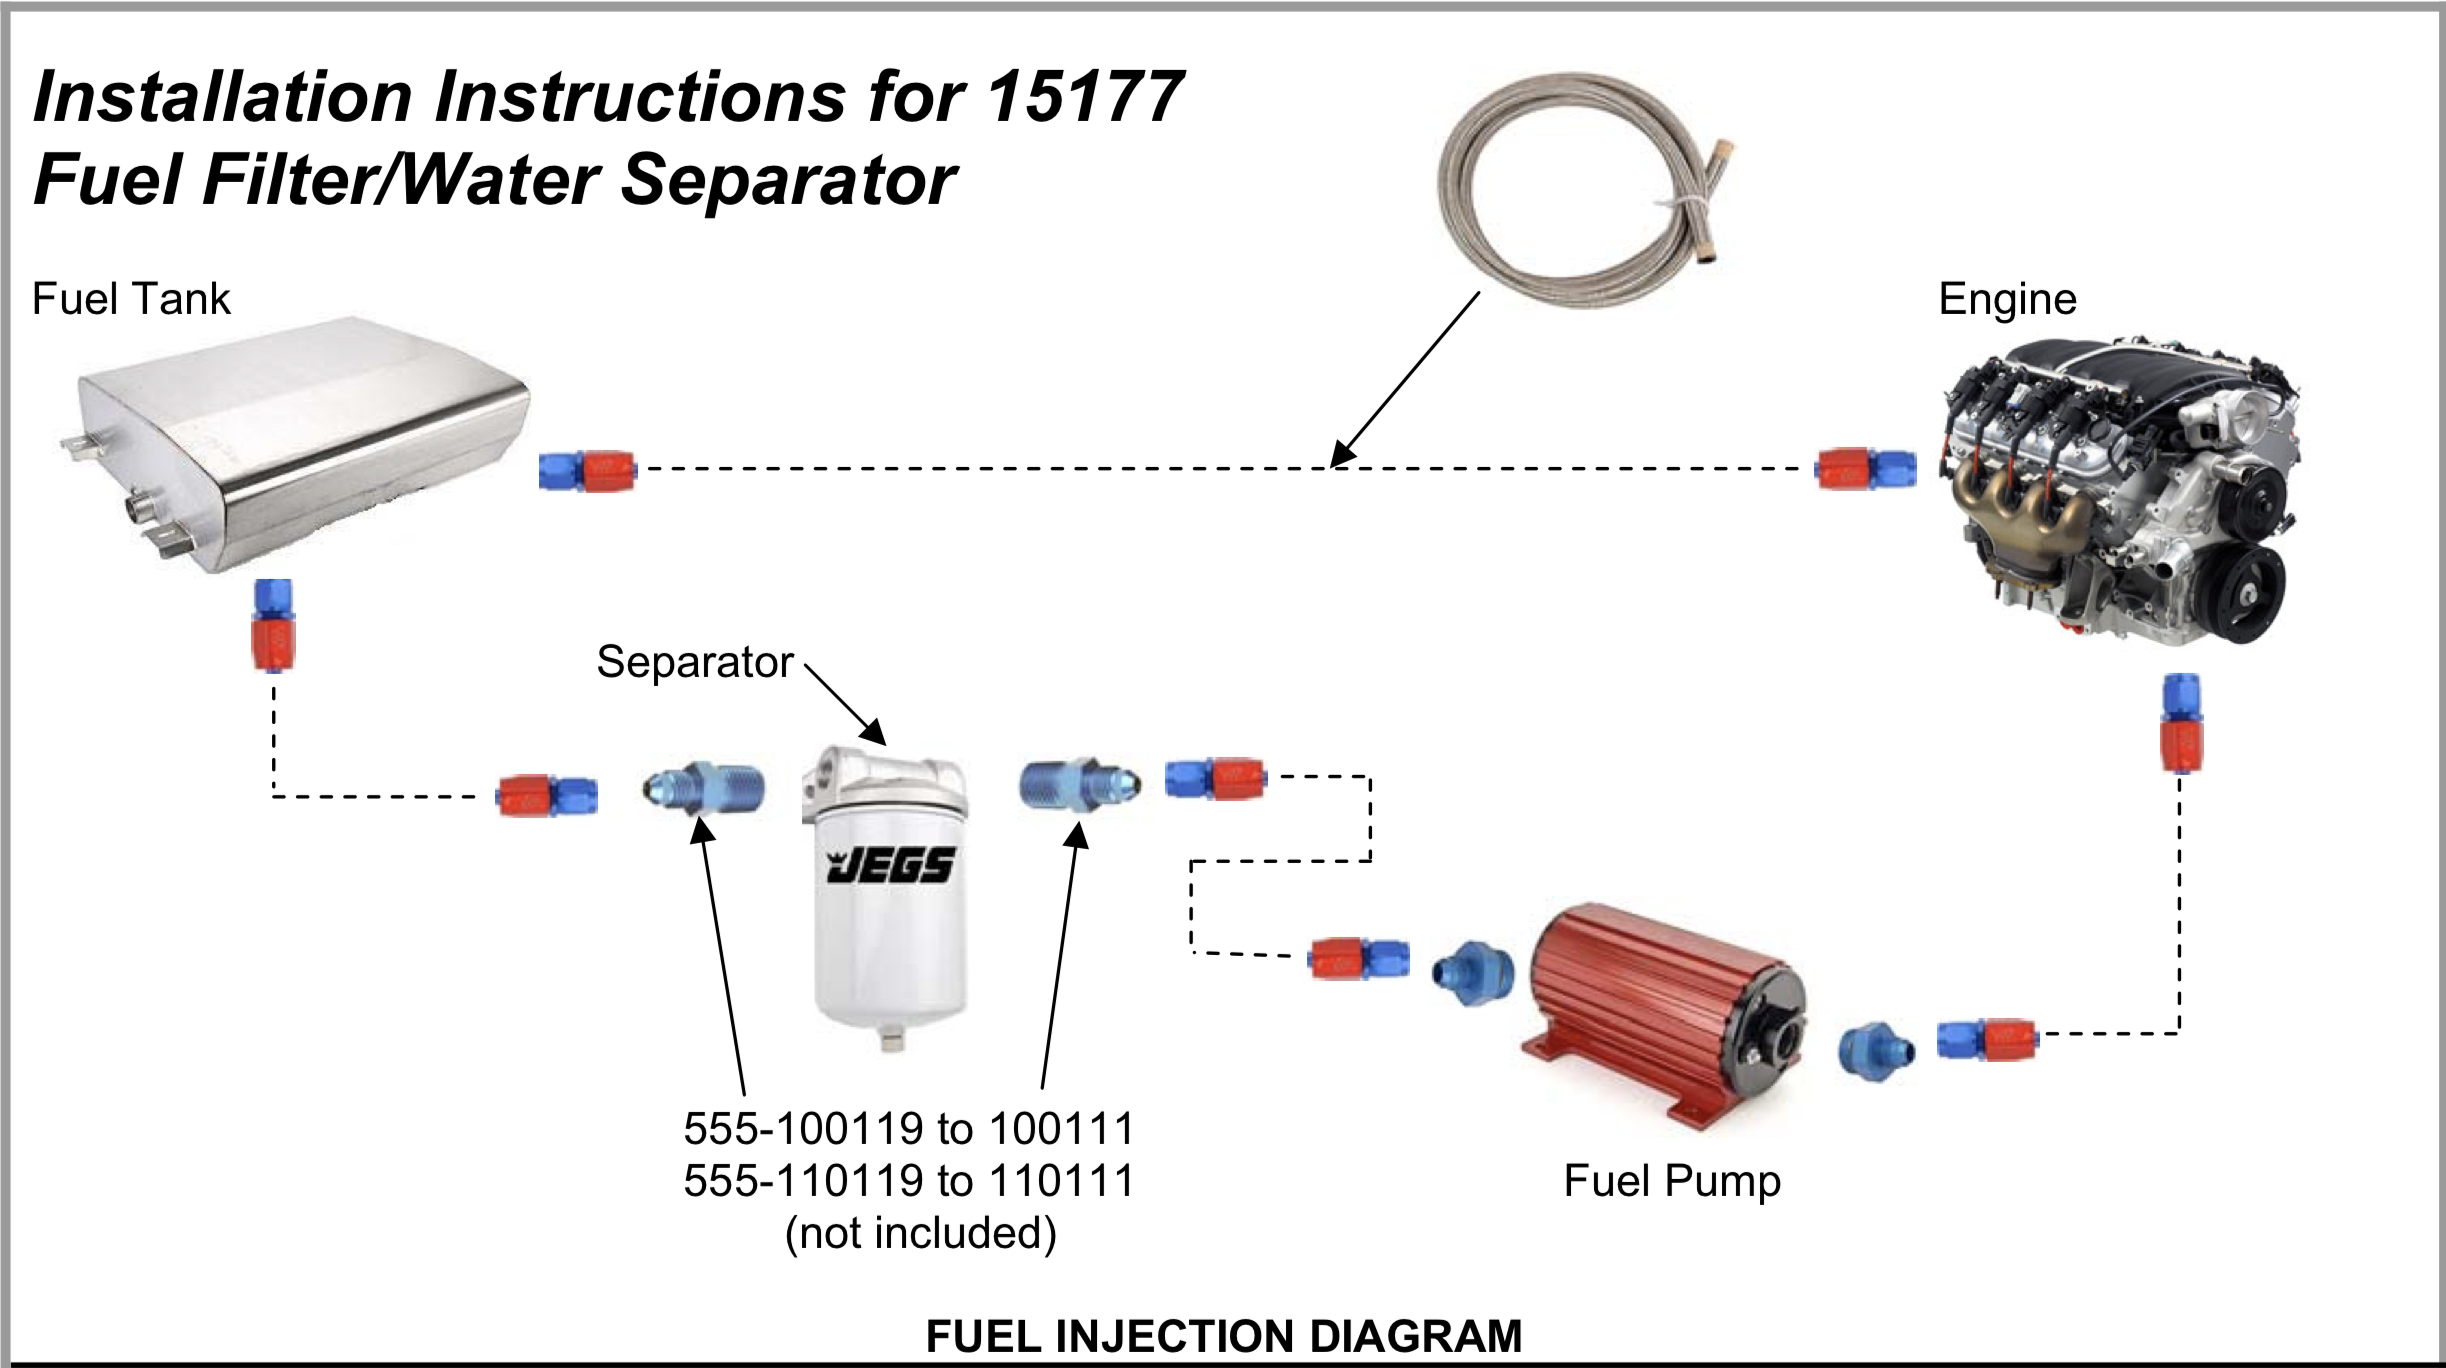 Fuel Water Separator Diagram Reinvent Your Wiring Ford 7 3 Vaccum And 15177 Installation Instructions For Filter Rh Answers Jegs Com 73 Liter Powerstroke